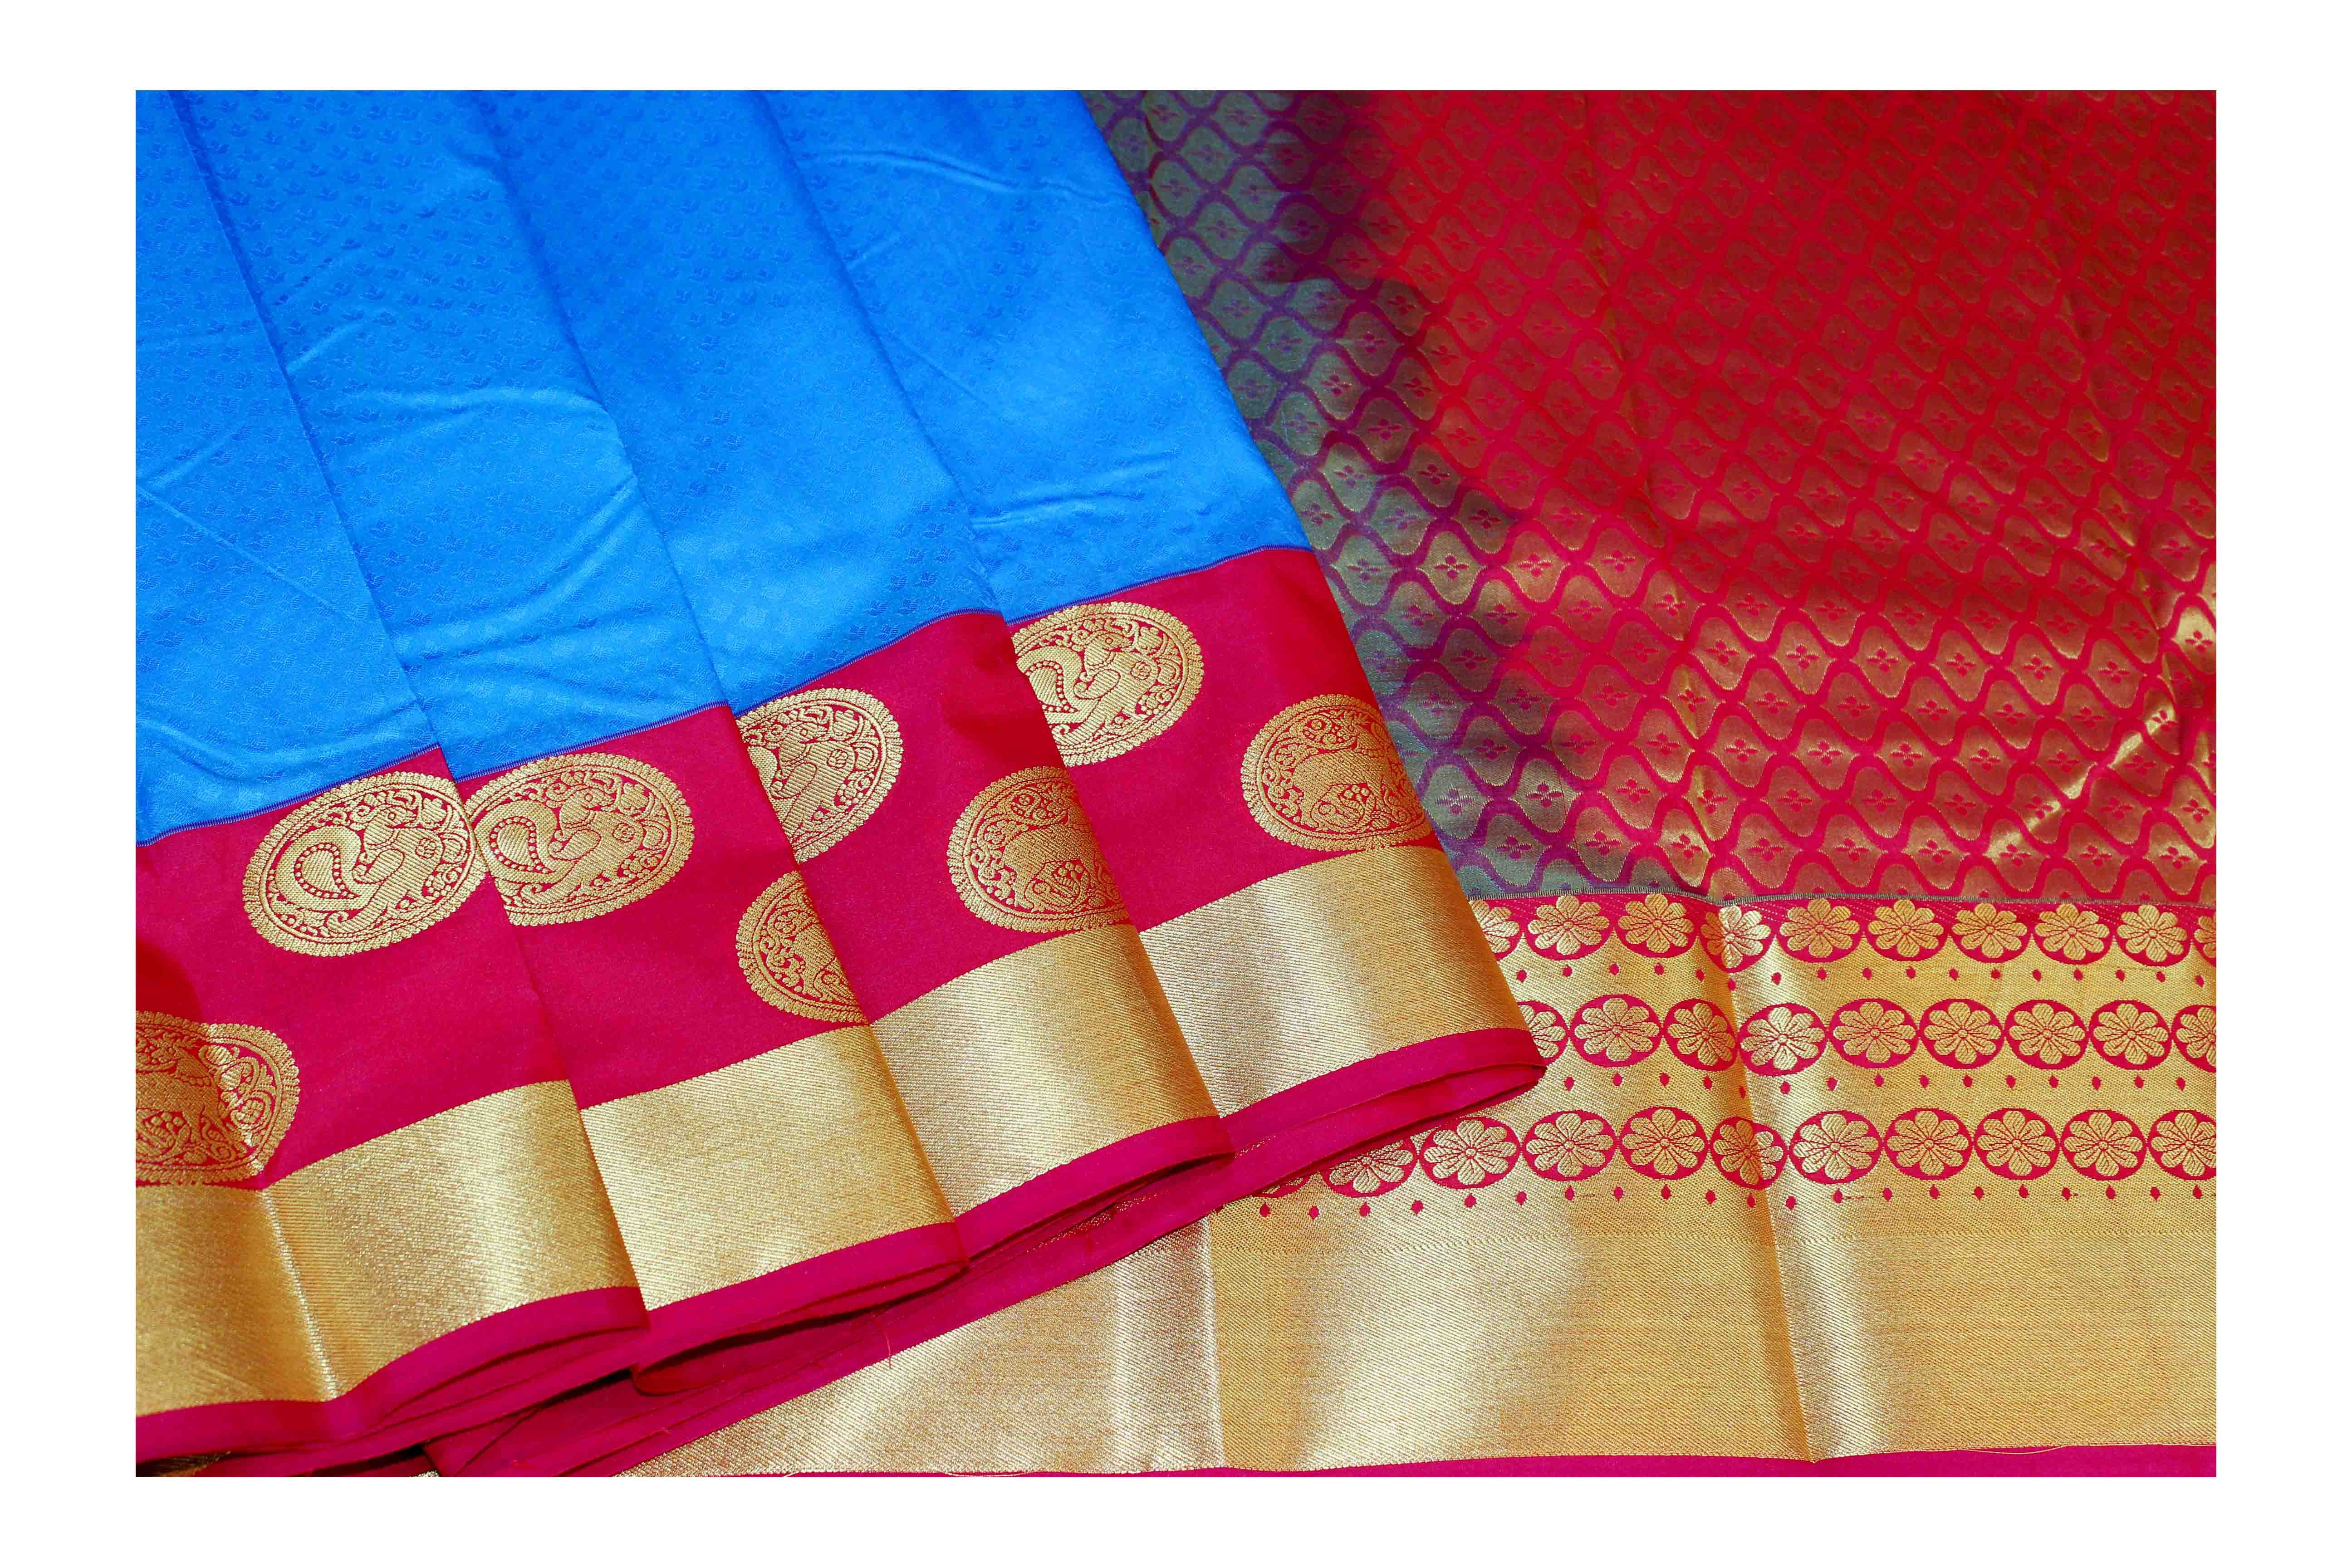 Mixture of  blue and red silk with golden border